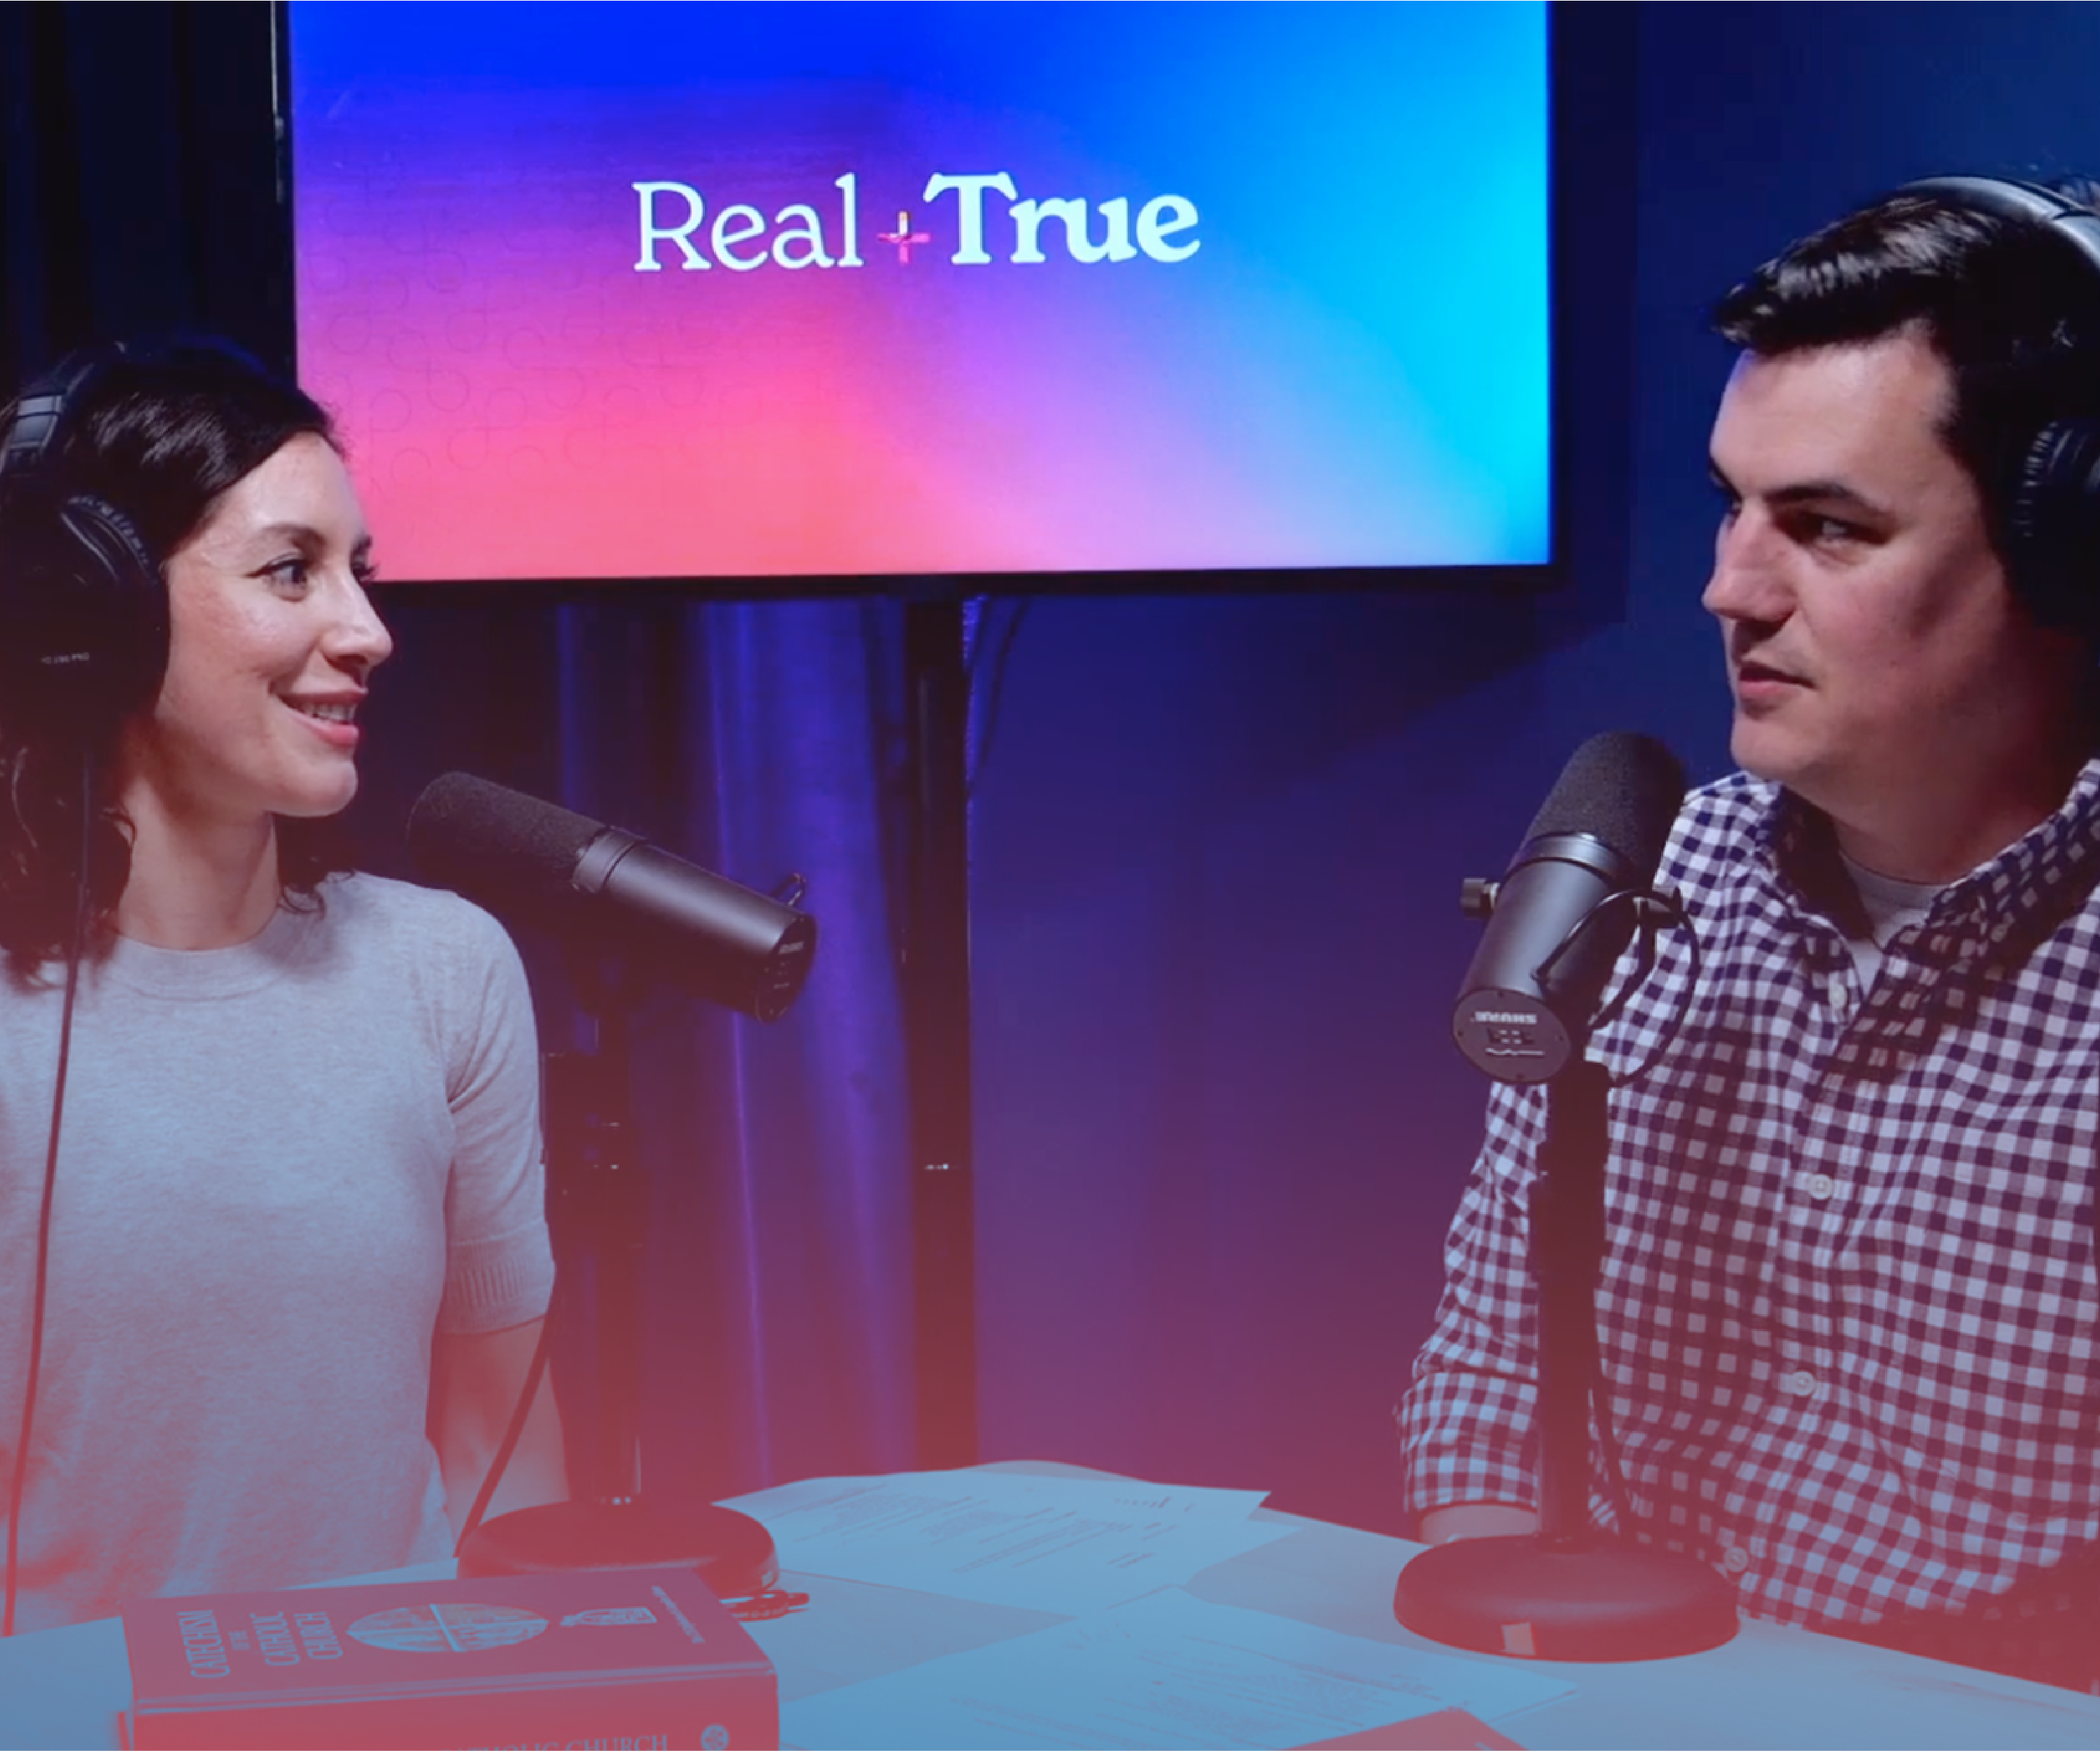 Real + True Podcast on the Catechism of the Catholic Church